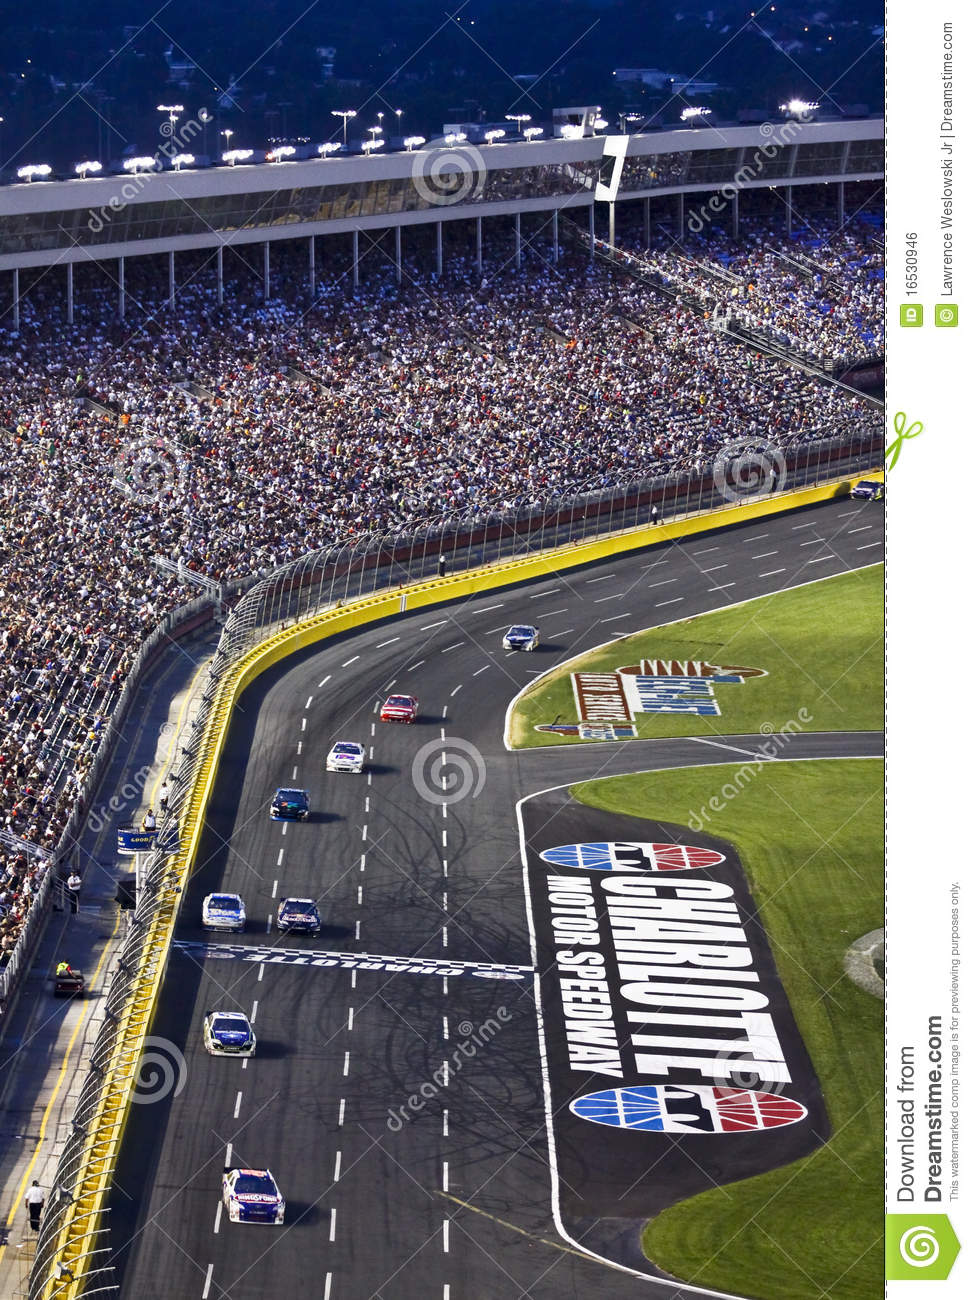 NASCAR - Fans Watch at Charlotte Motor Speedway